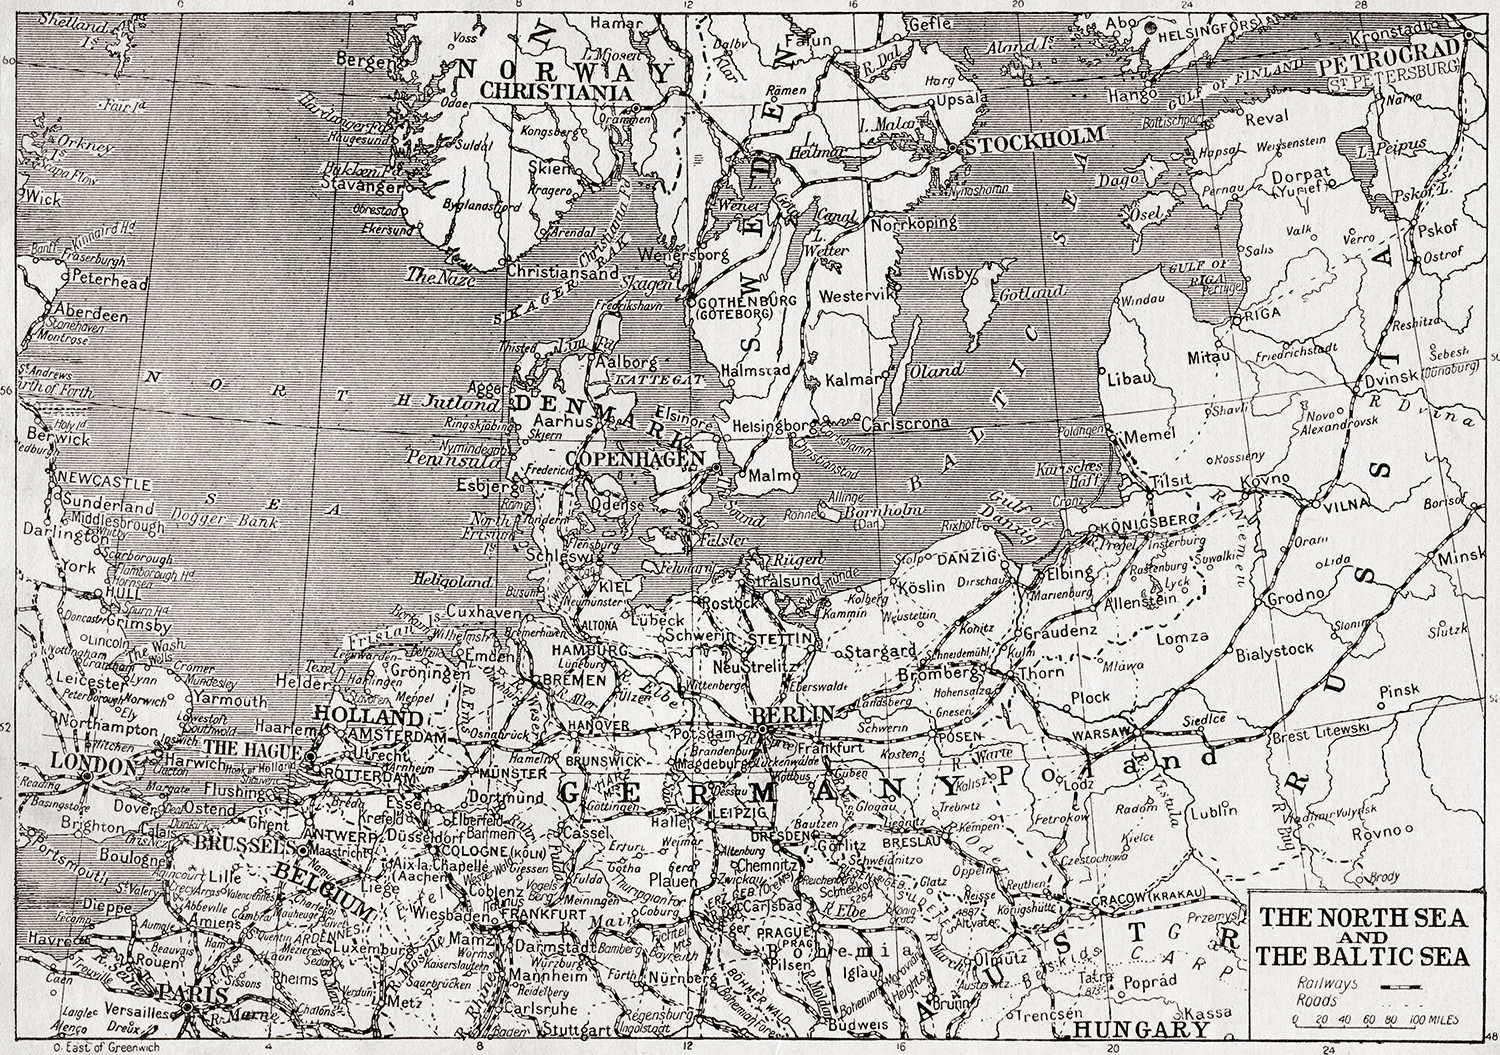 Map of the North Sea and Baltic Sea, 1914.